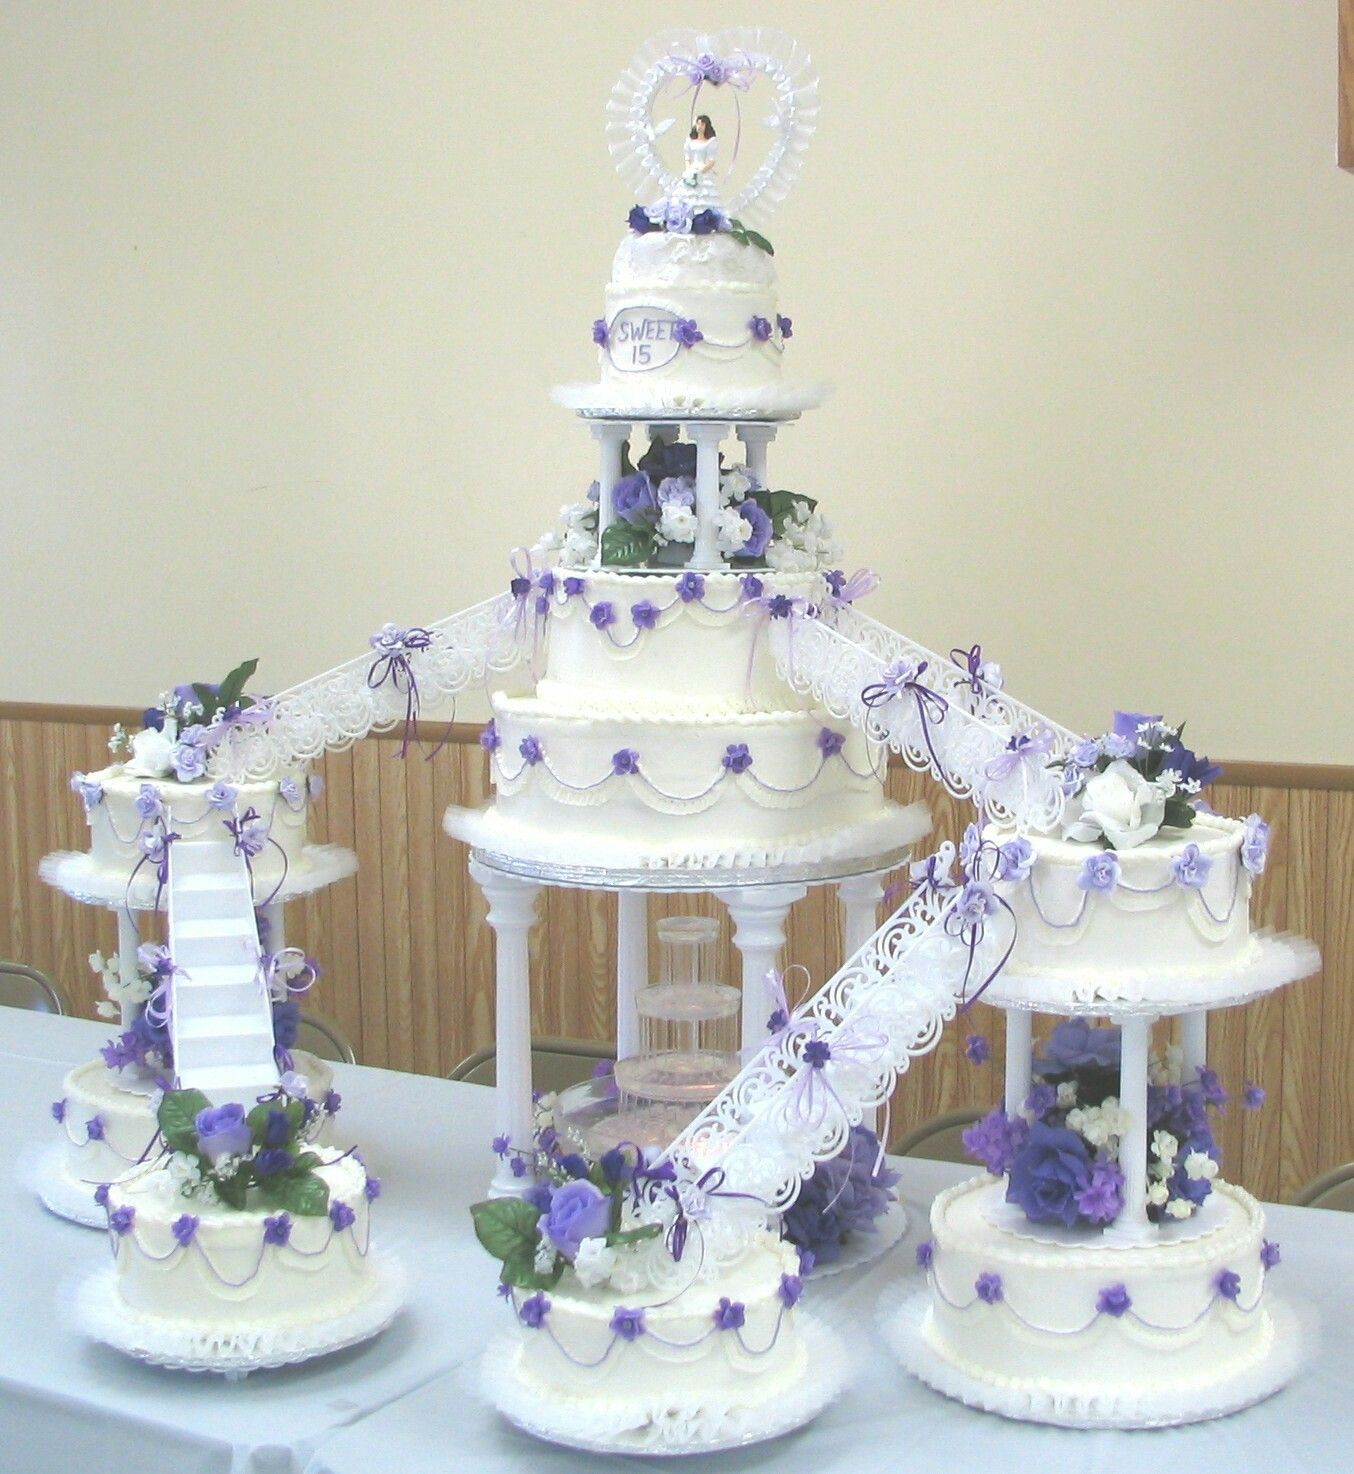 Pin by Kristen Canler on Cakes | Pinterest | Wedding cake, Cake and ...